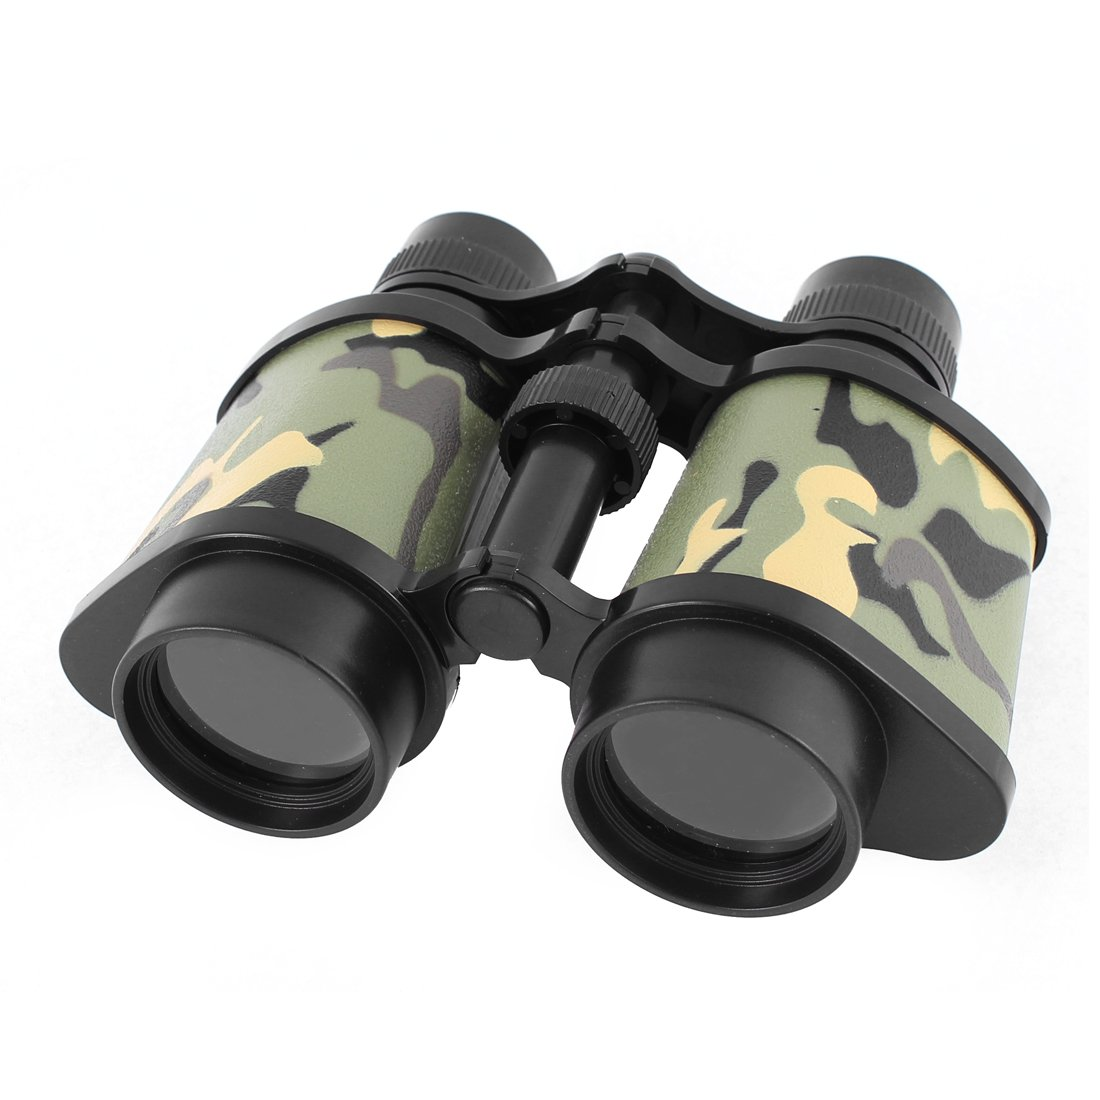 uxcell Plastic Clear Lens Hang Strap Adjustable Binocular Camouflage Color by uxcell